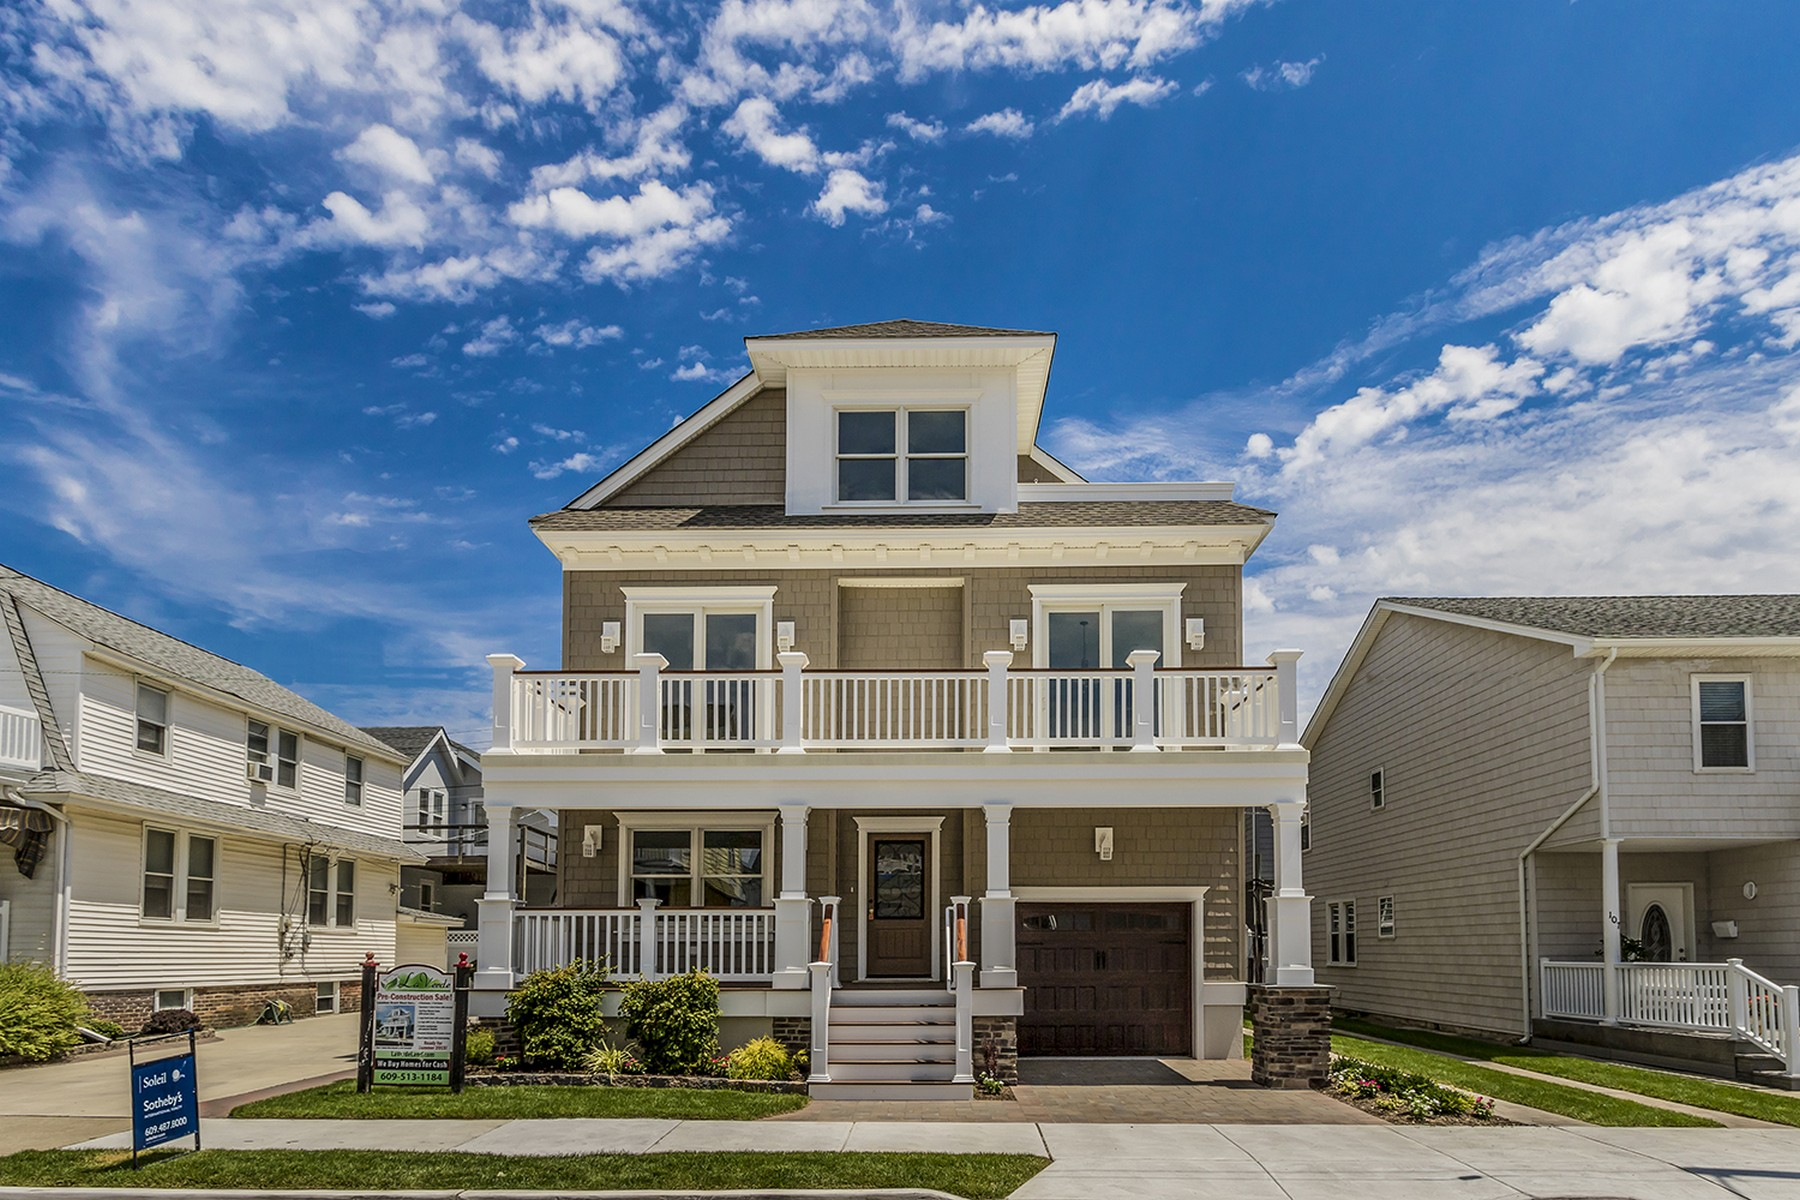 Single Family Home for Sale at 105 S Troy Ave. Ventnor, New Jersey 08406 United States